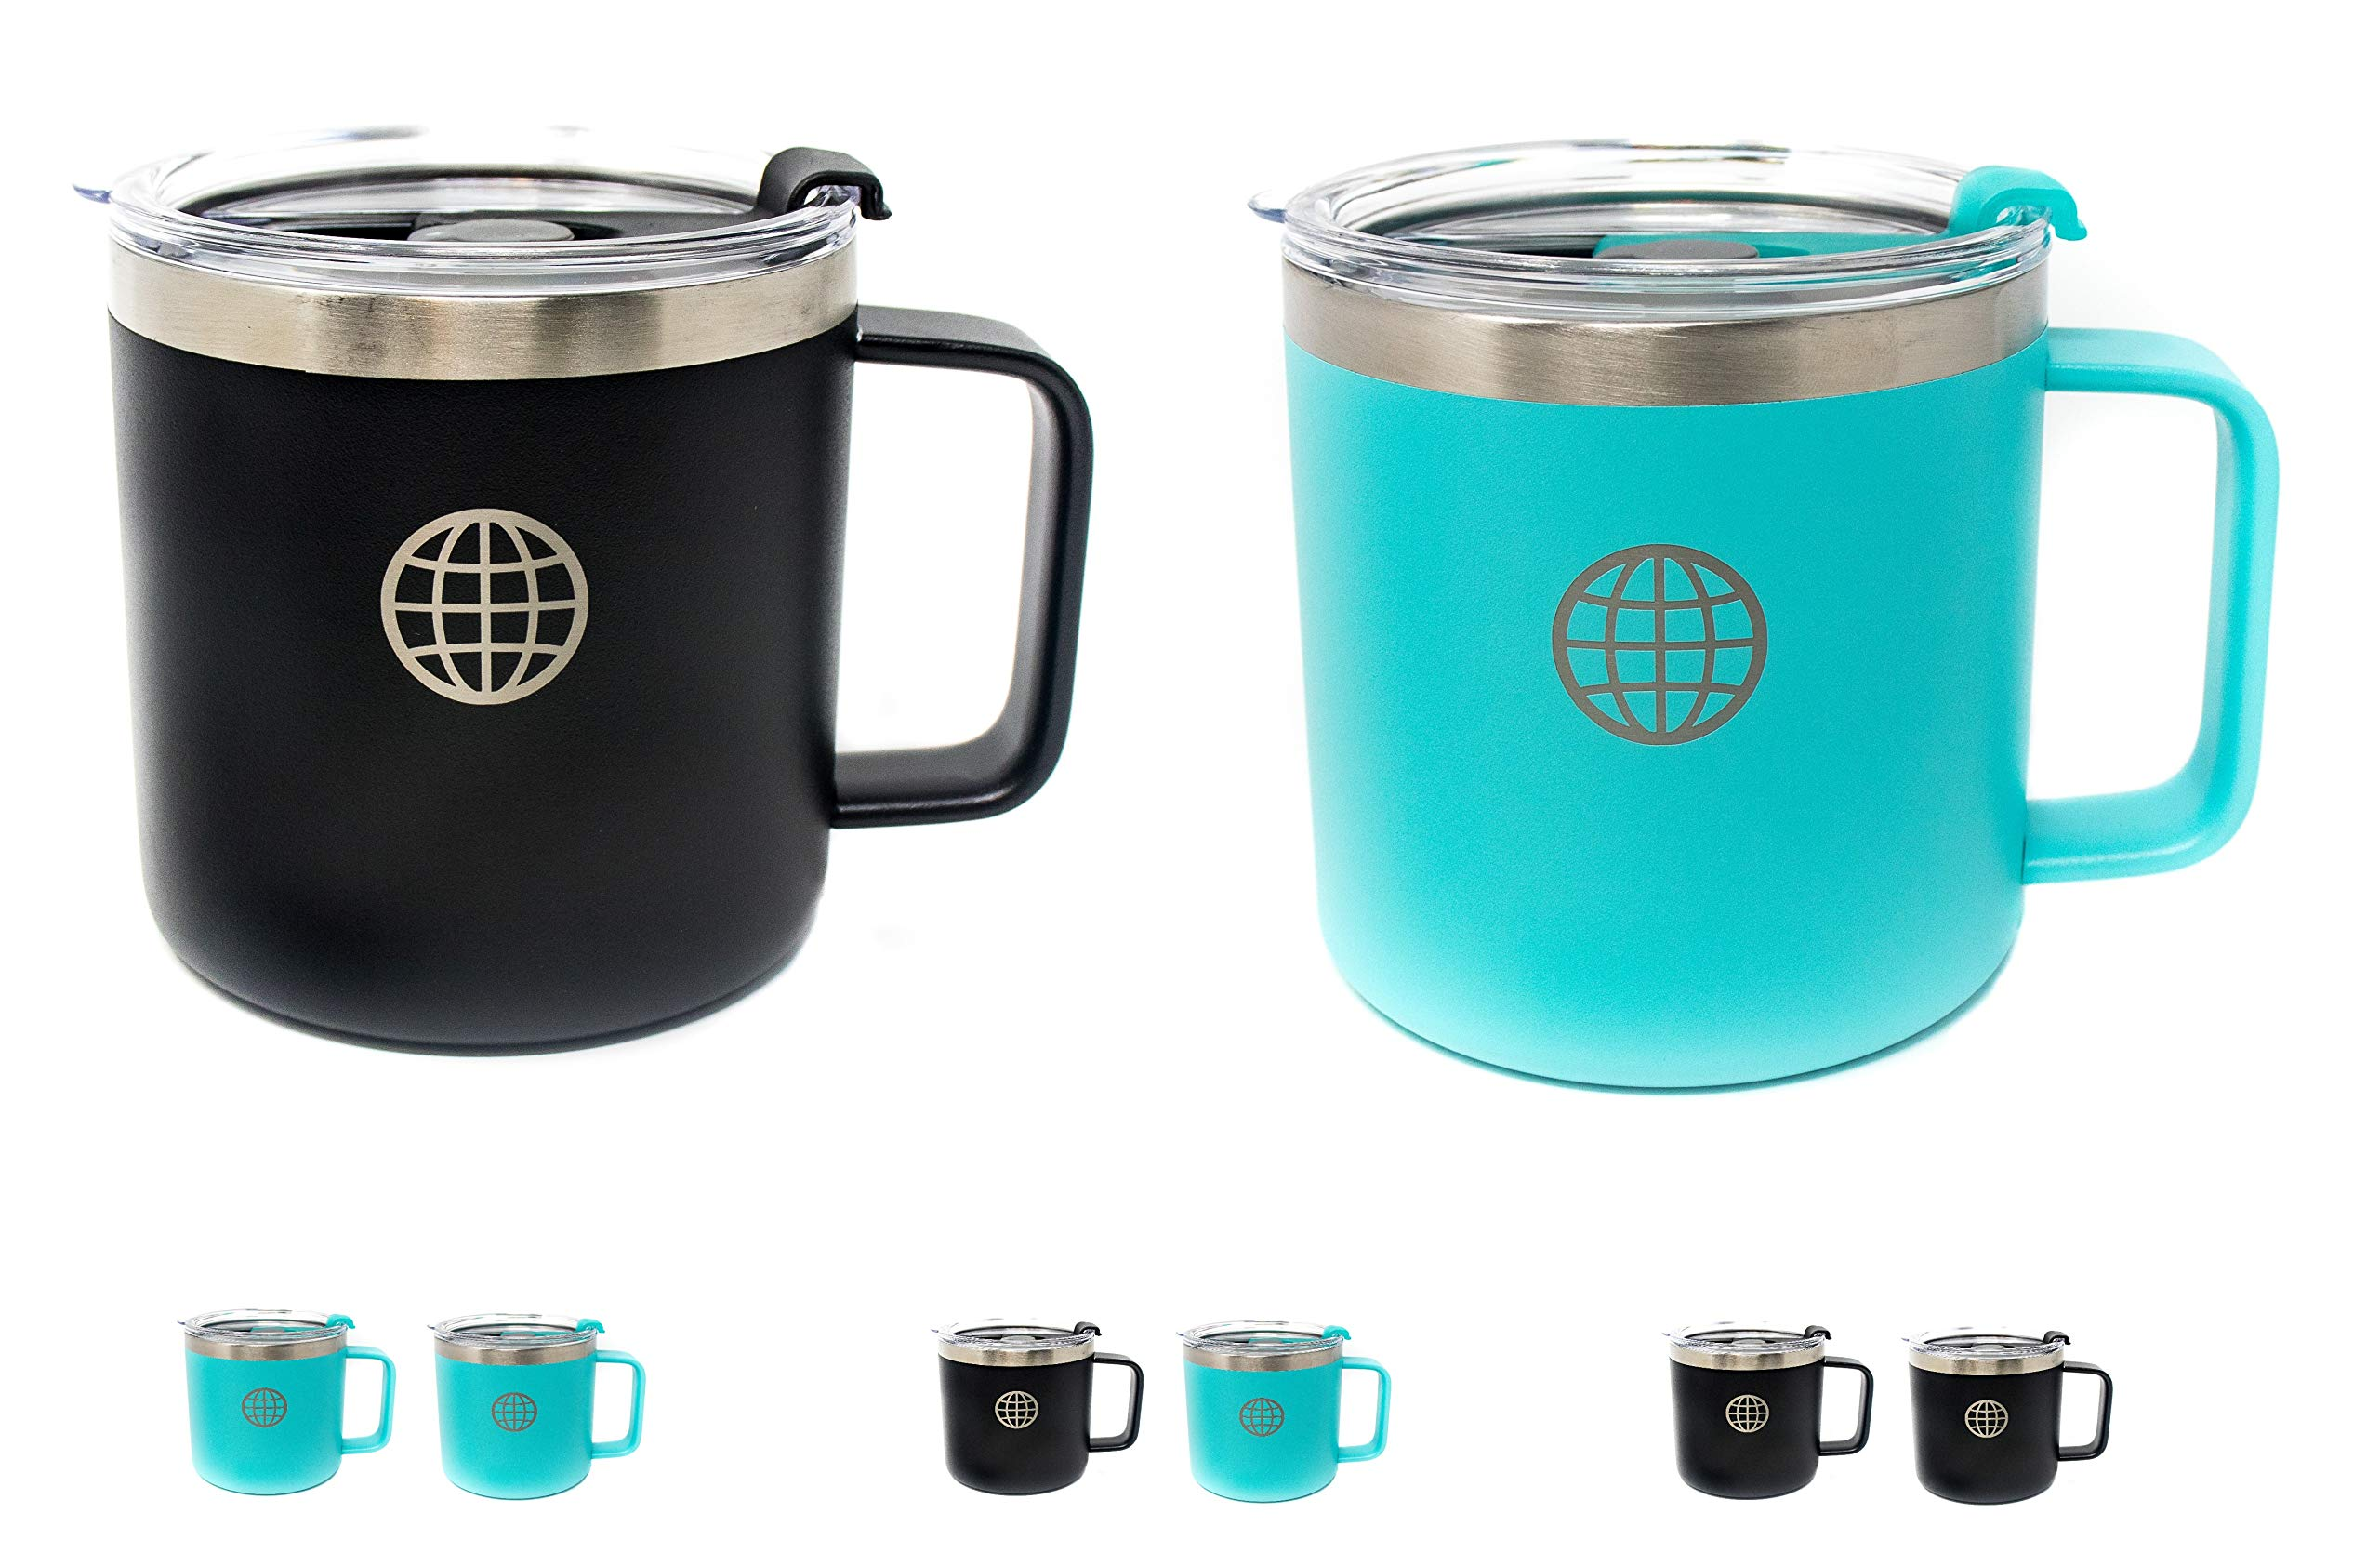 Cool Coffee Mug with Lid and Handle - JTSC Products 2 Pack 14 oz Double Wall Insulated Stainless Steel coffee mug - Cool gifts for Men - Large coffee mug for Camping - Big Coffee Mug (Black Blue)